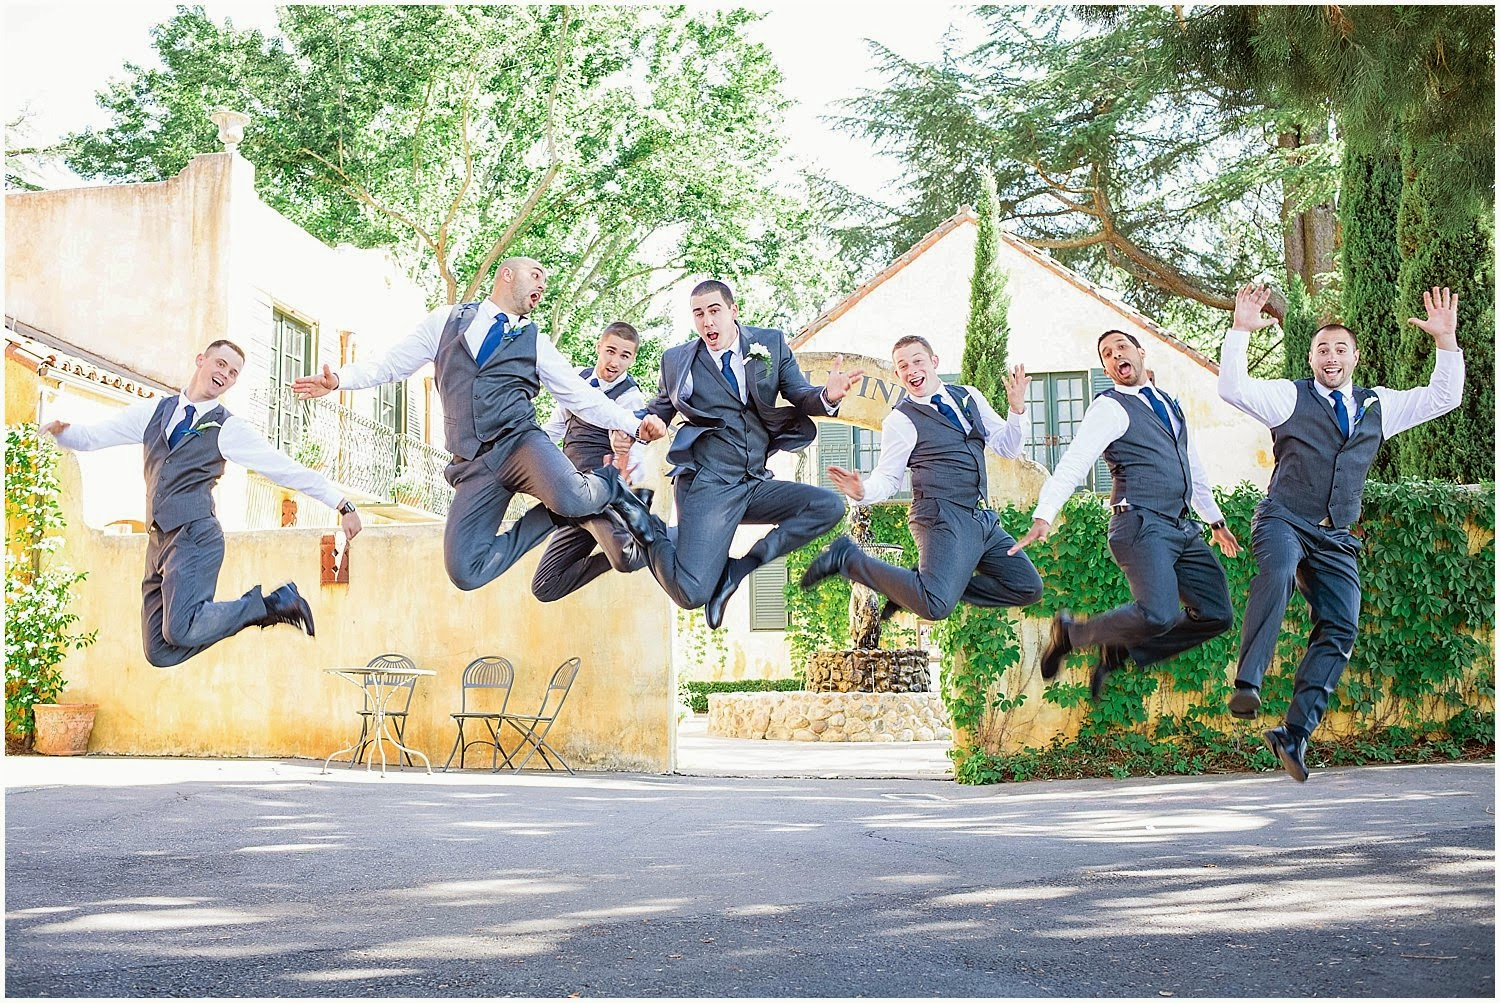 We Had So Much Fun At Your Wedding And Wish You The Best